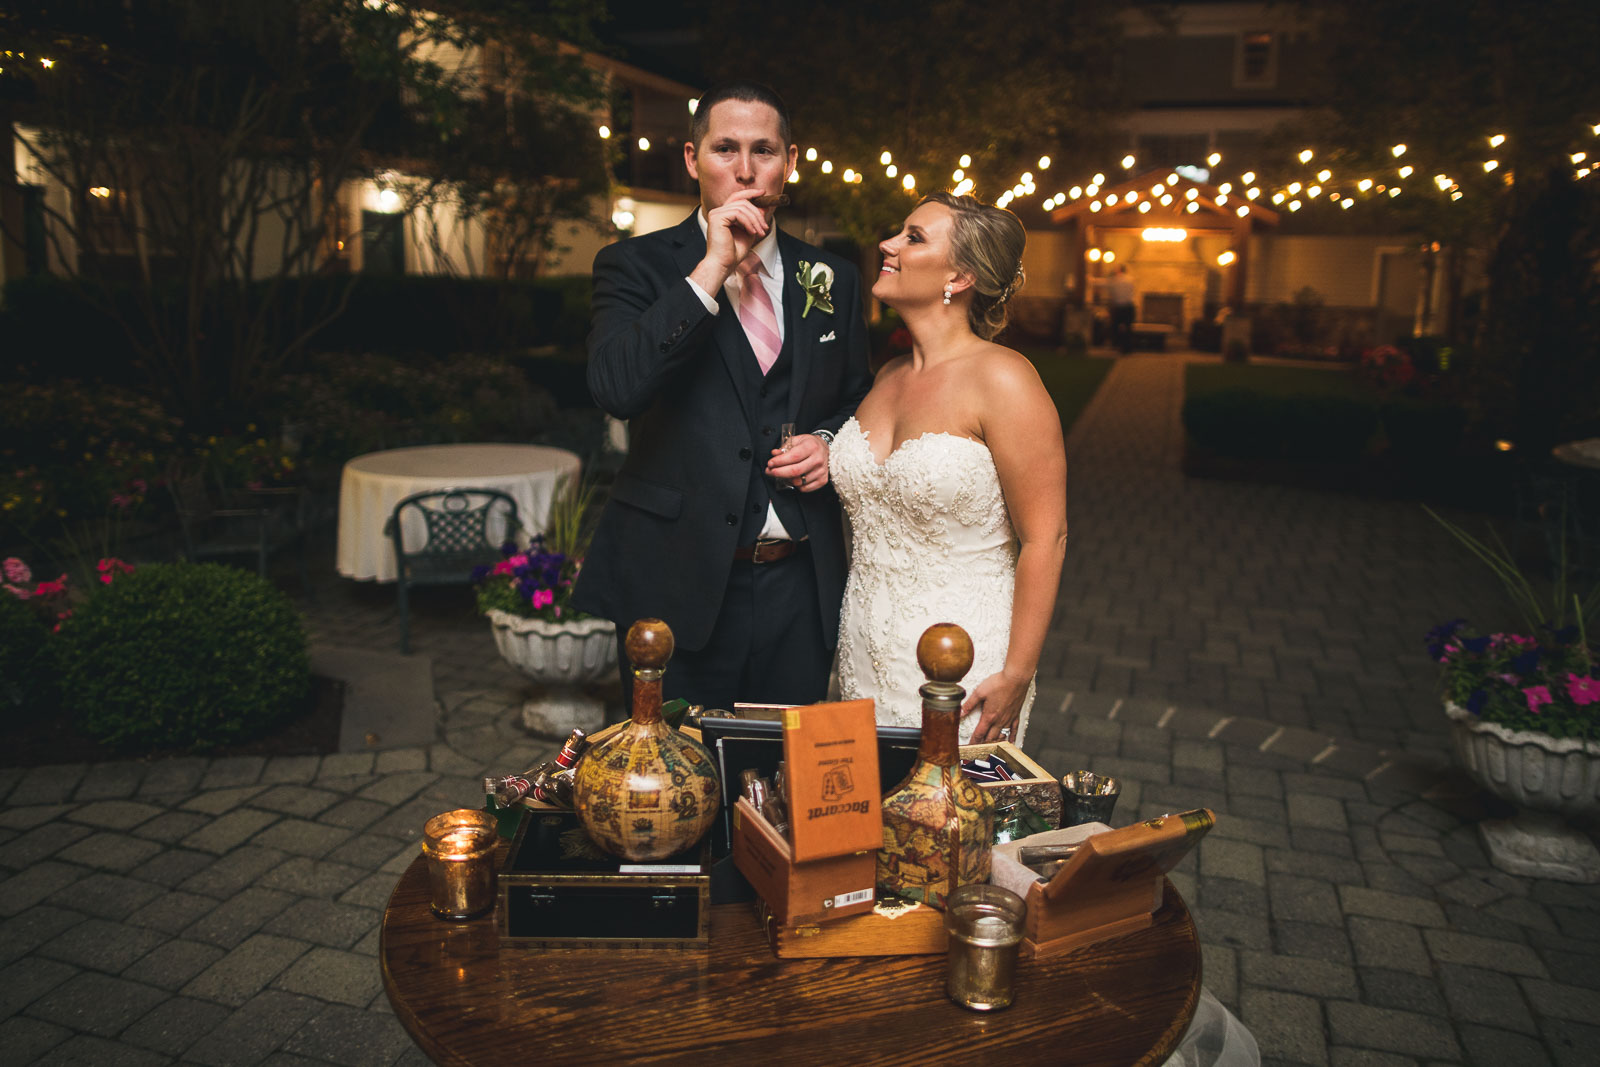 Olde Mill Inn Basking Ridge NJ Wedding Photography